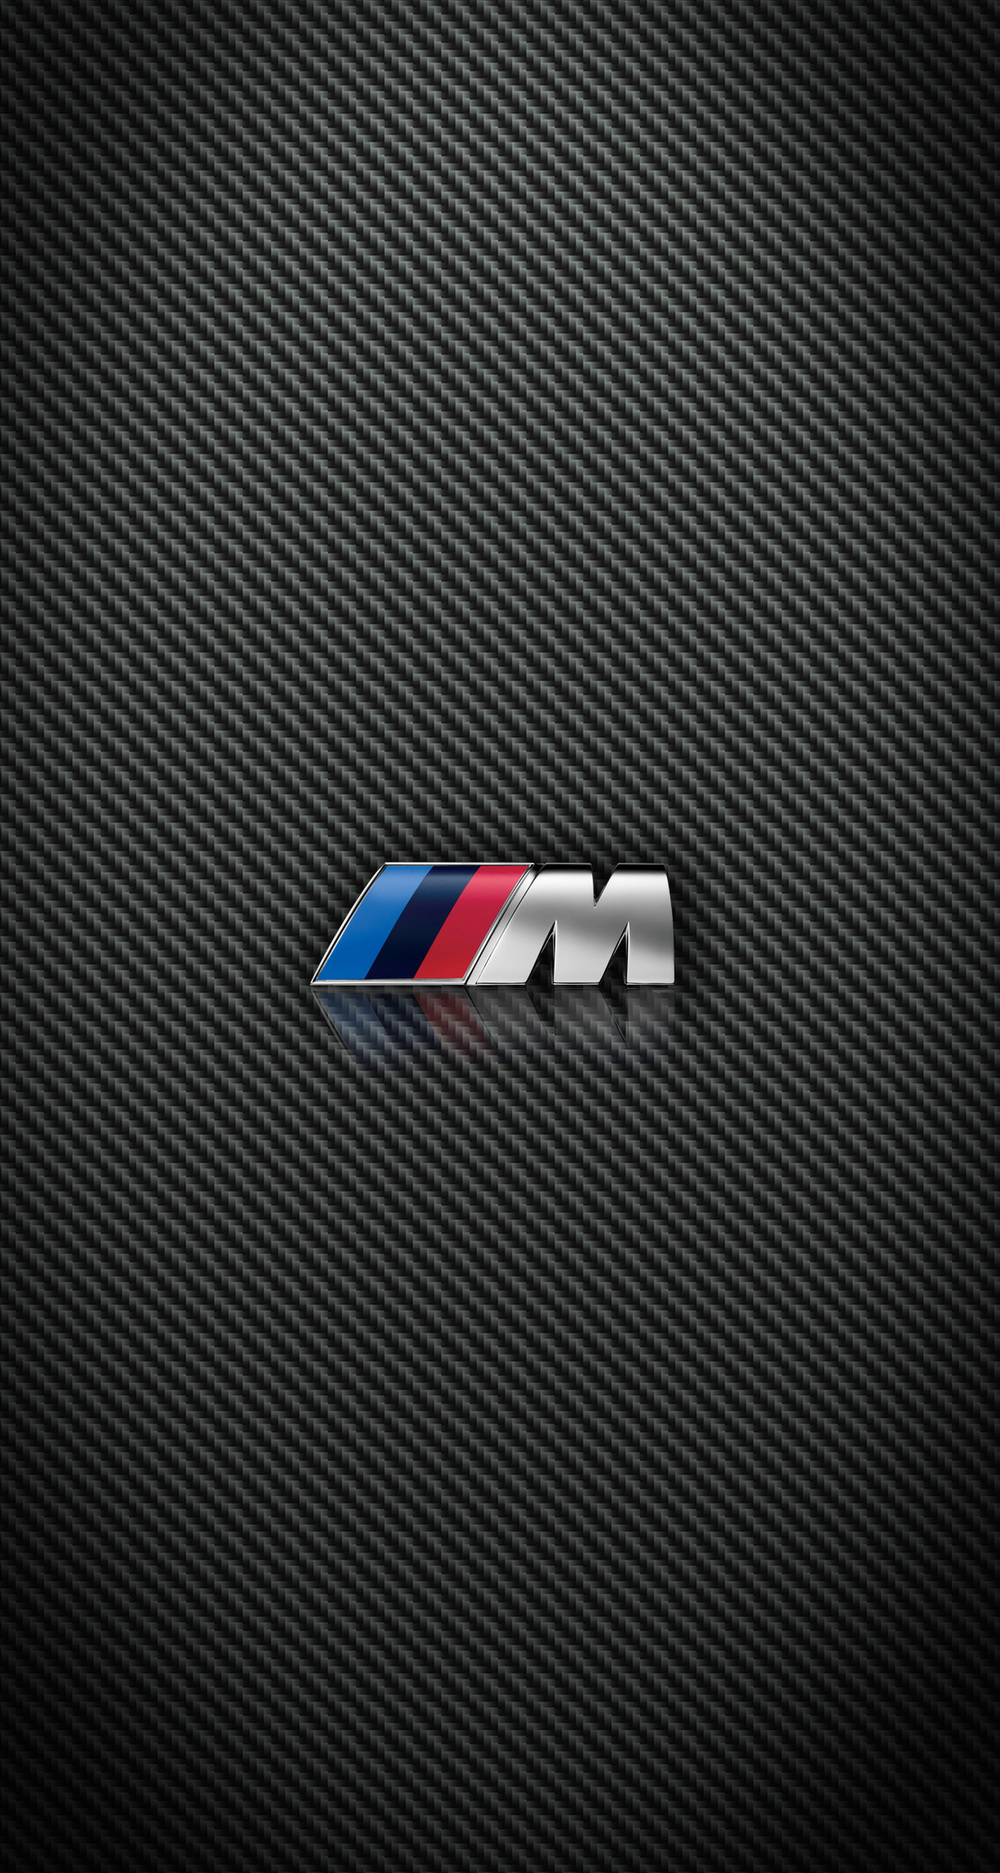 Carbon Fiber BMW and M Power iPhone wallpapers for iPhone 6 Plus ...